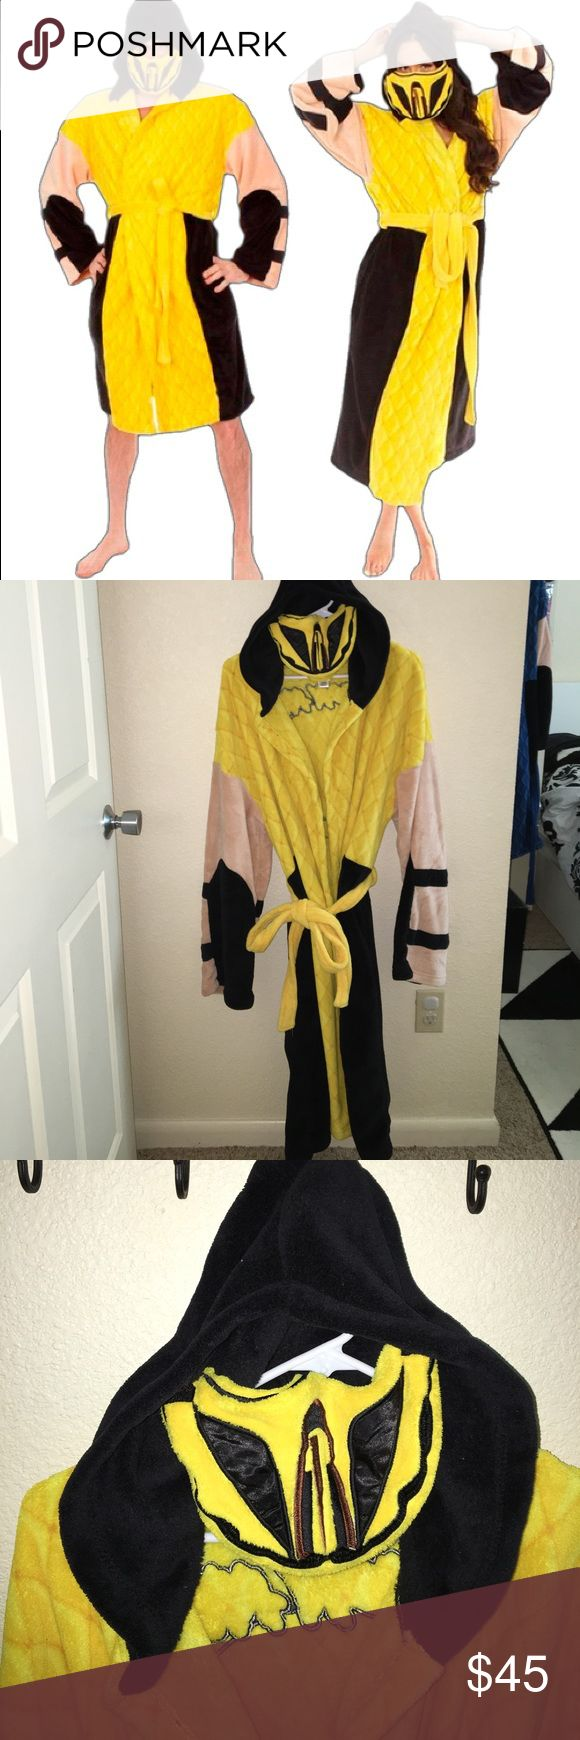 Unisex Mortal Kombat Scorpion Robe Show your love for Mortal Kombat with this awesome scorpion robe! Yellow and black                                                          Hooded                                                                   Detachable Velcro Mask 100% Polyester super comfy, Soft Material.  One Size Fits Most Measures 46 1/2-inches long Unisex Mortal Kombat Intimates & Sleepwear Robes